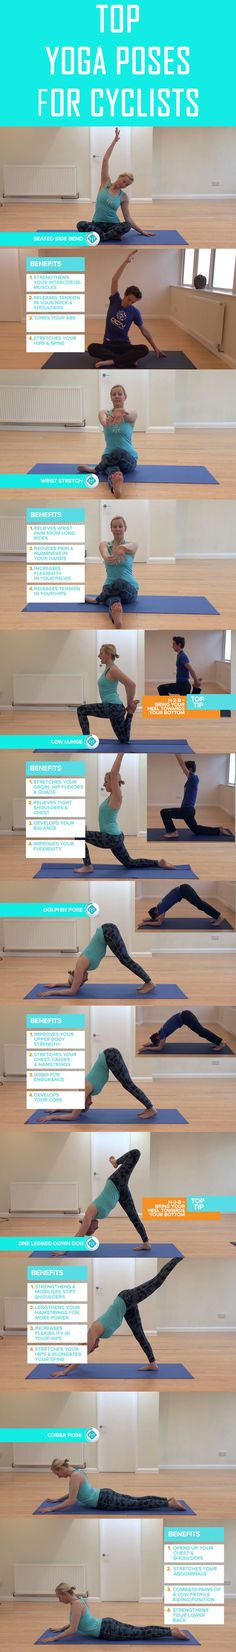 Yoga poses for every cyclist should be doing. #cycling #bike #yoga #yogapose